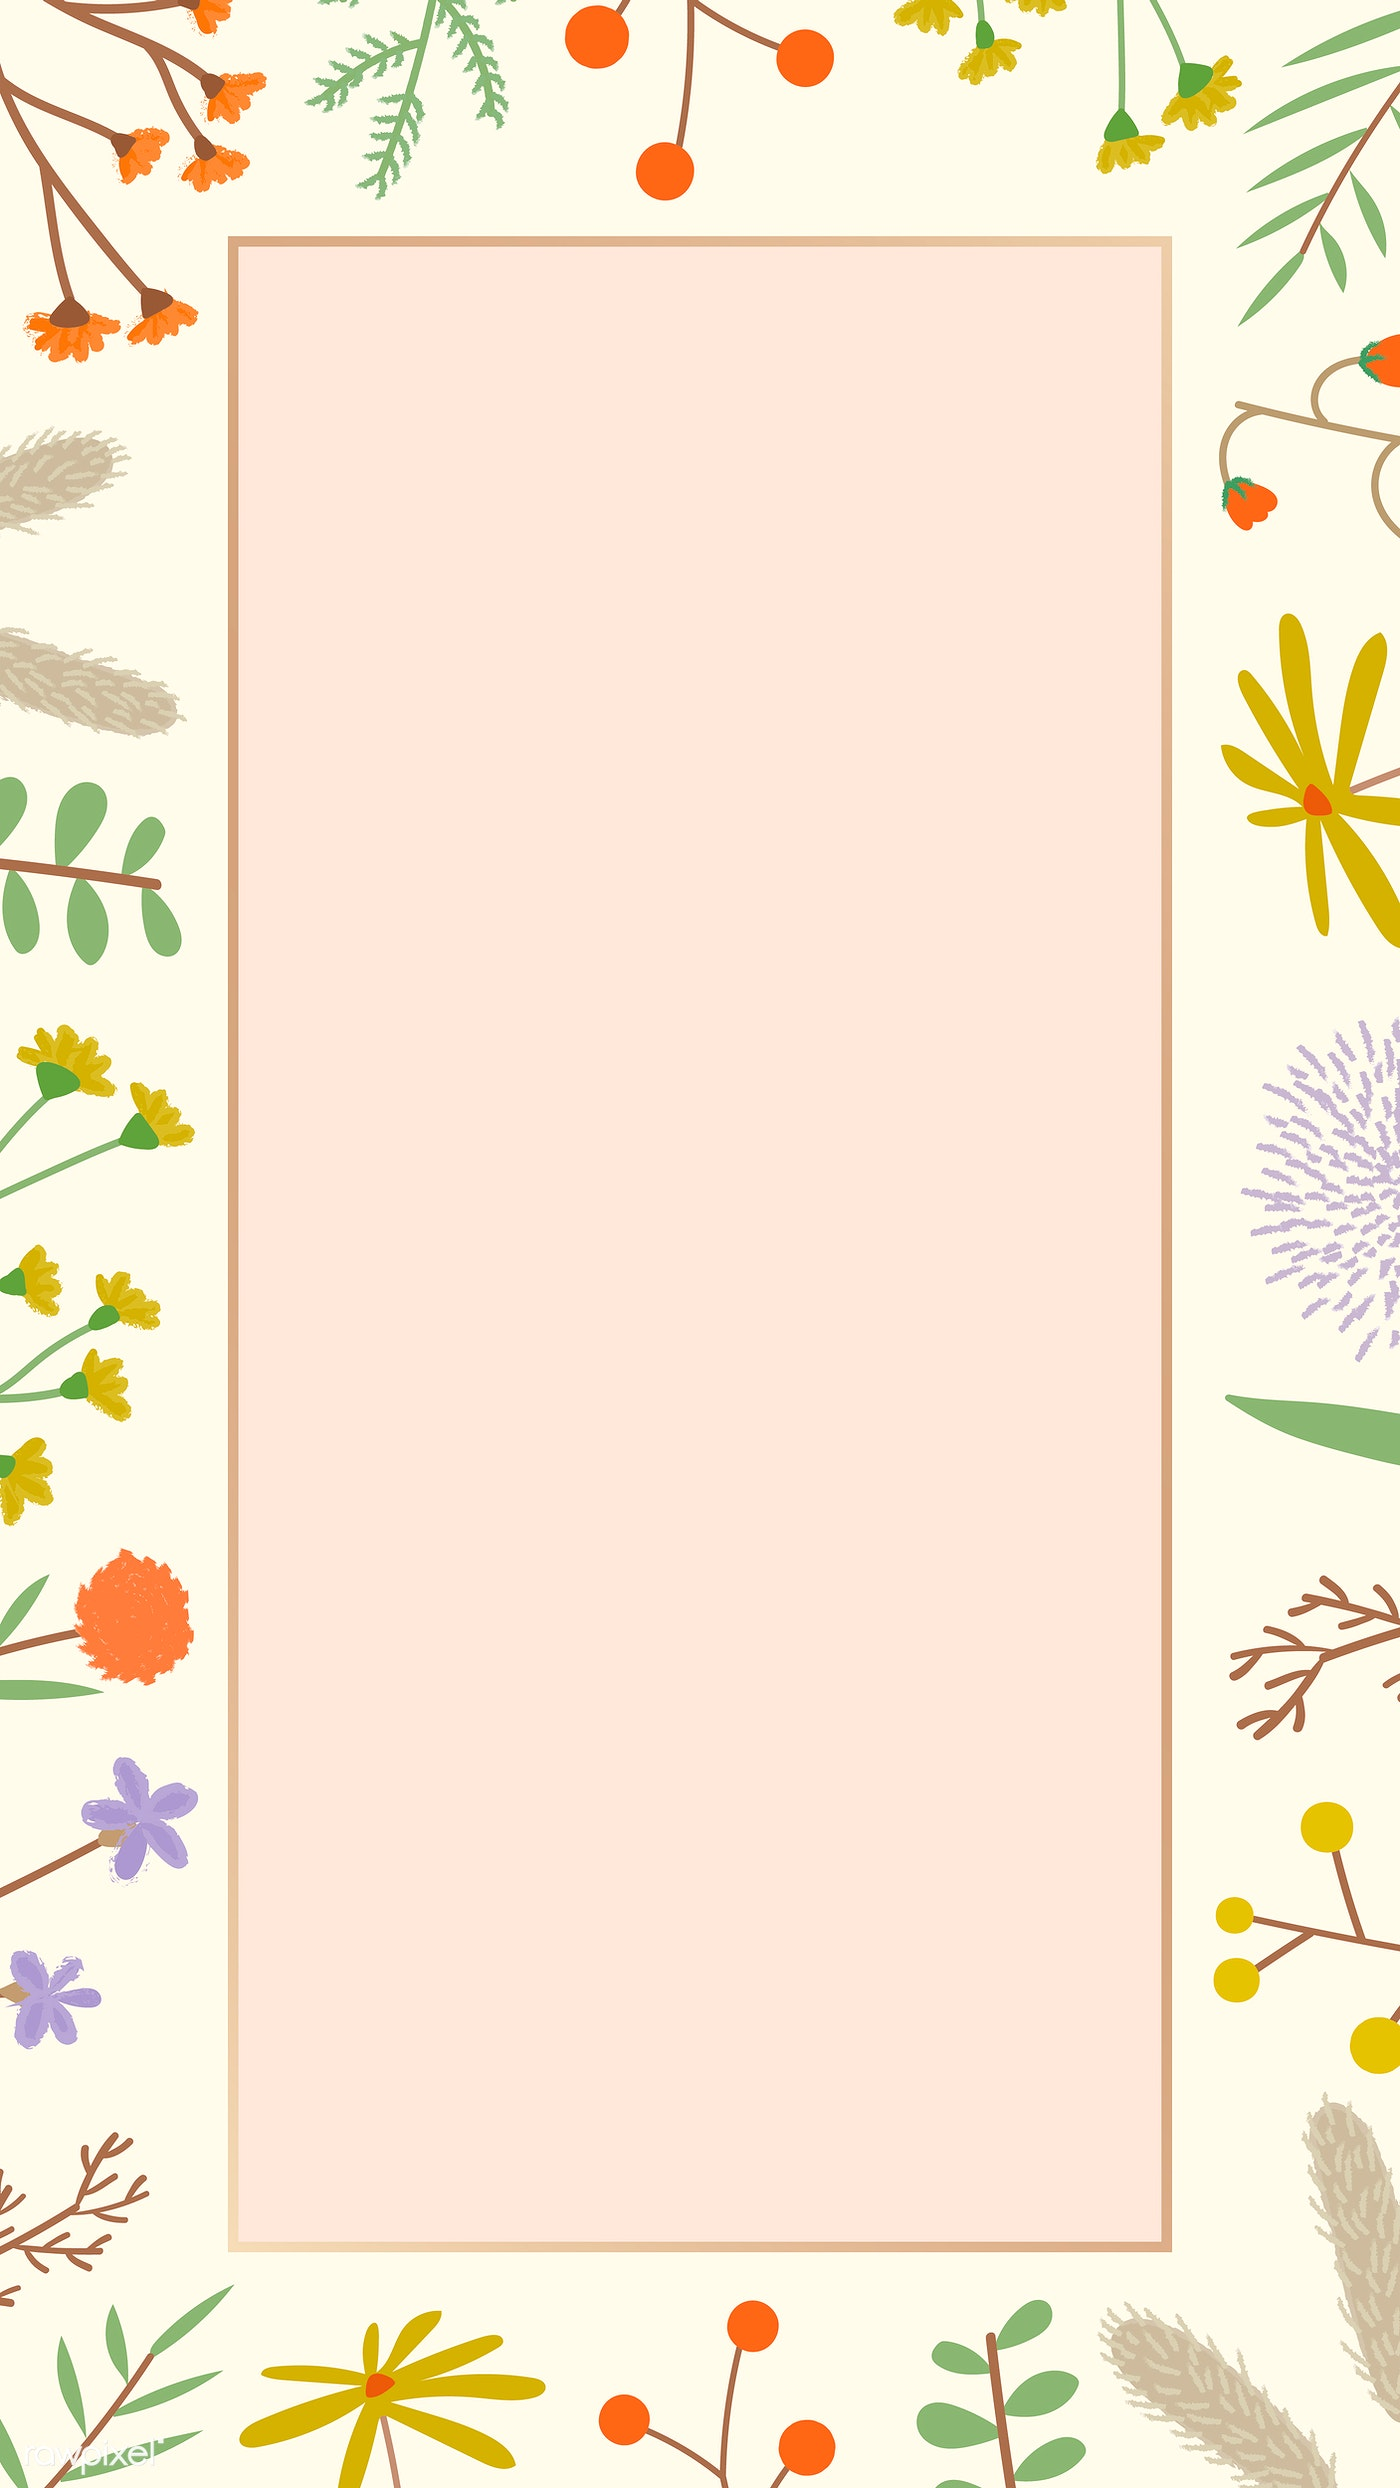 Cute Floral Phone Background Royalty Free Vector 1222893